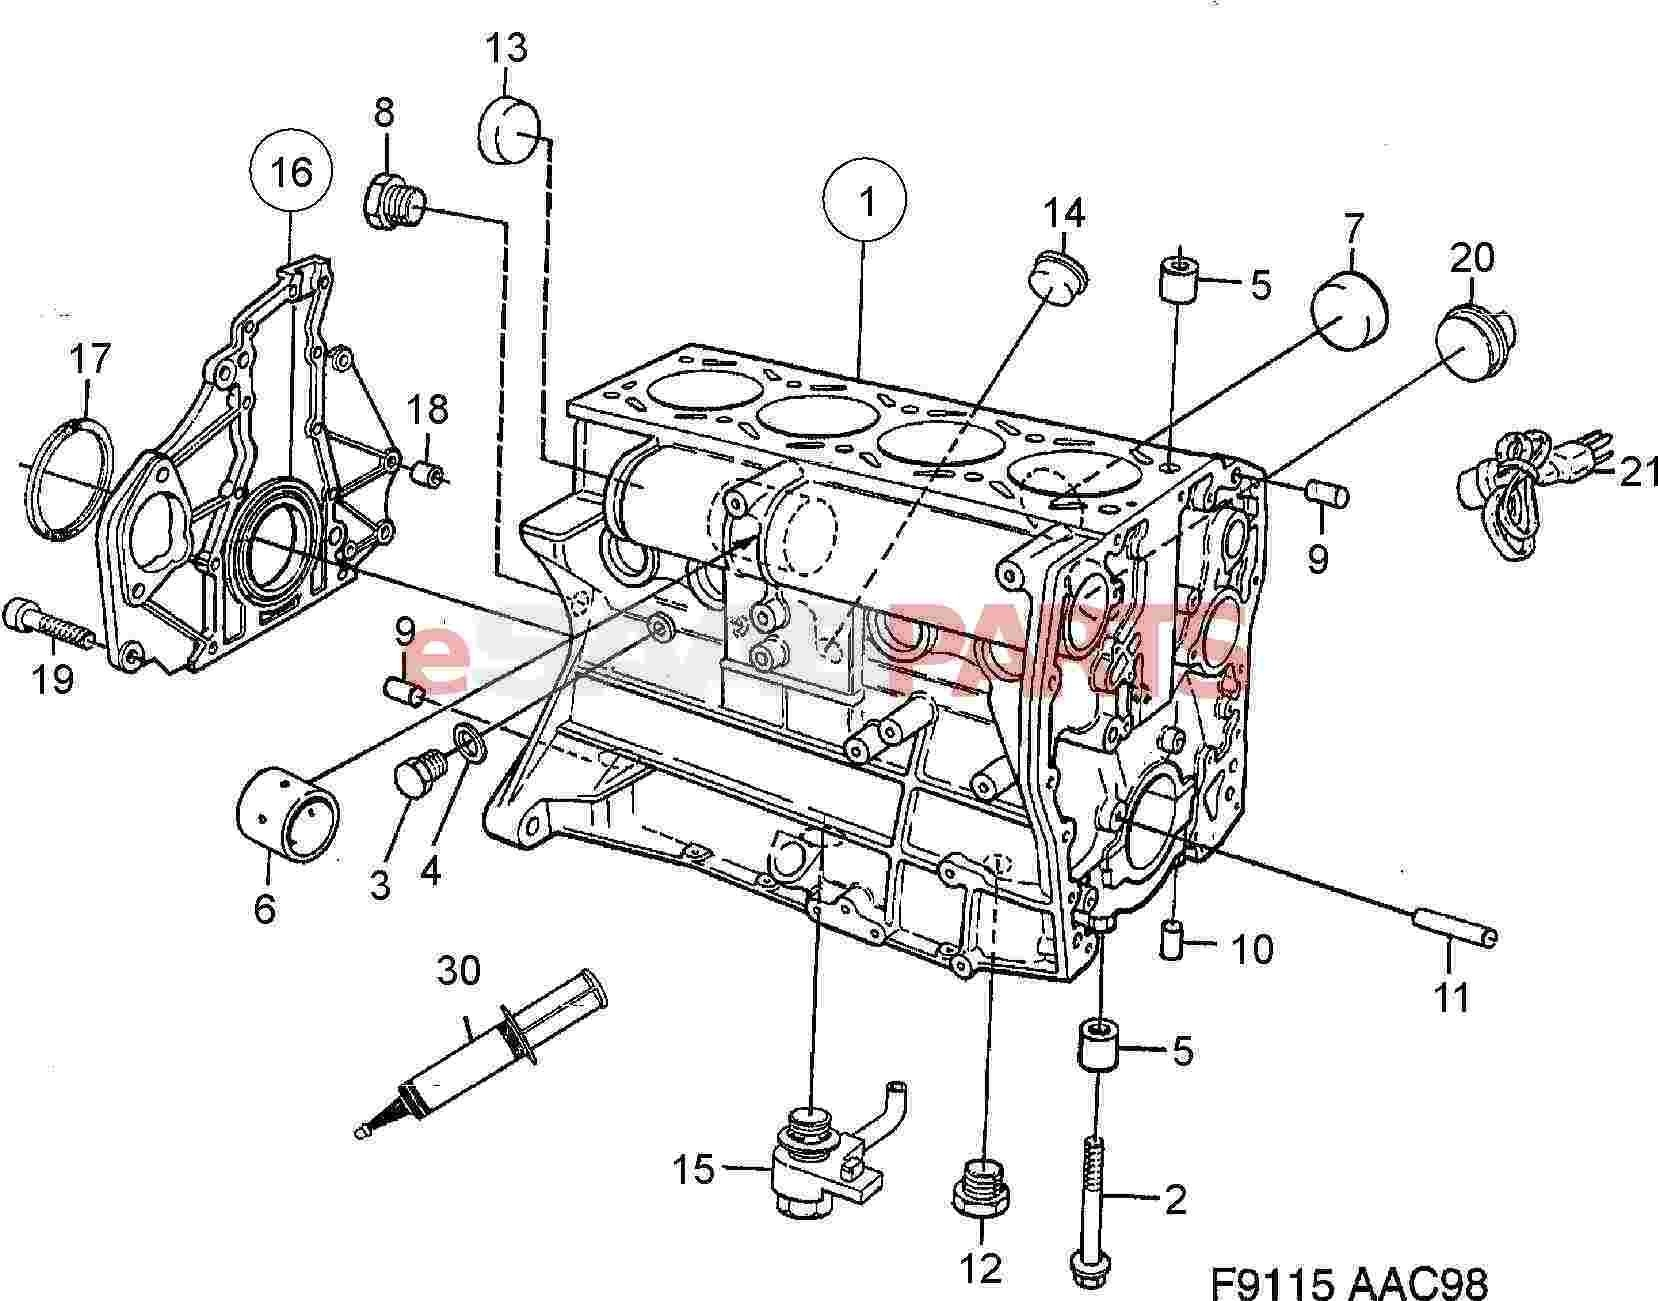 Saab 9 3 Engine Diagram Saab 9 5 Engine Diagram 2 2 ] Saab Flange Sealant Genuine Saab Parts Of Saab 9 3 Engine Diagram